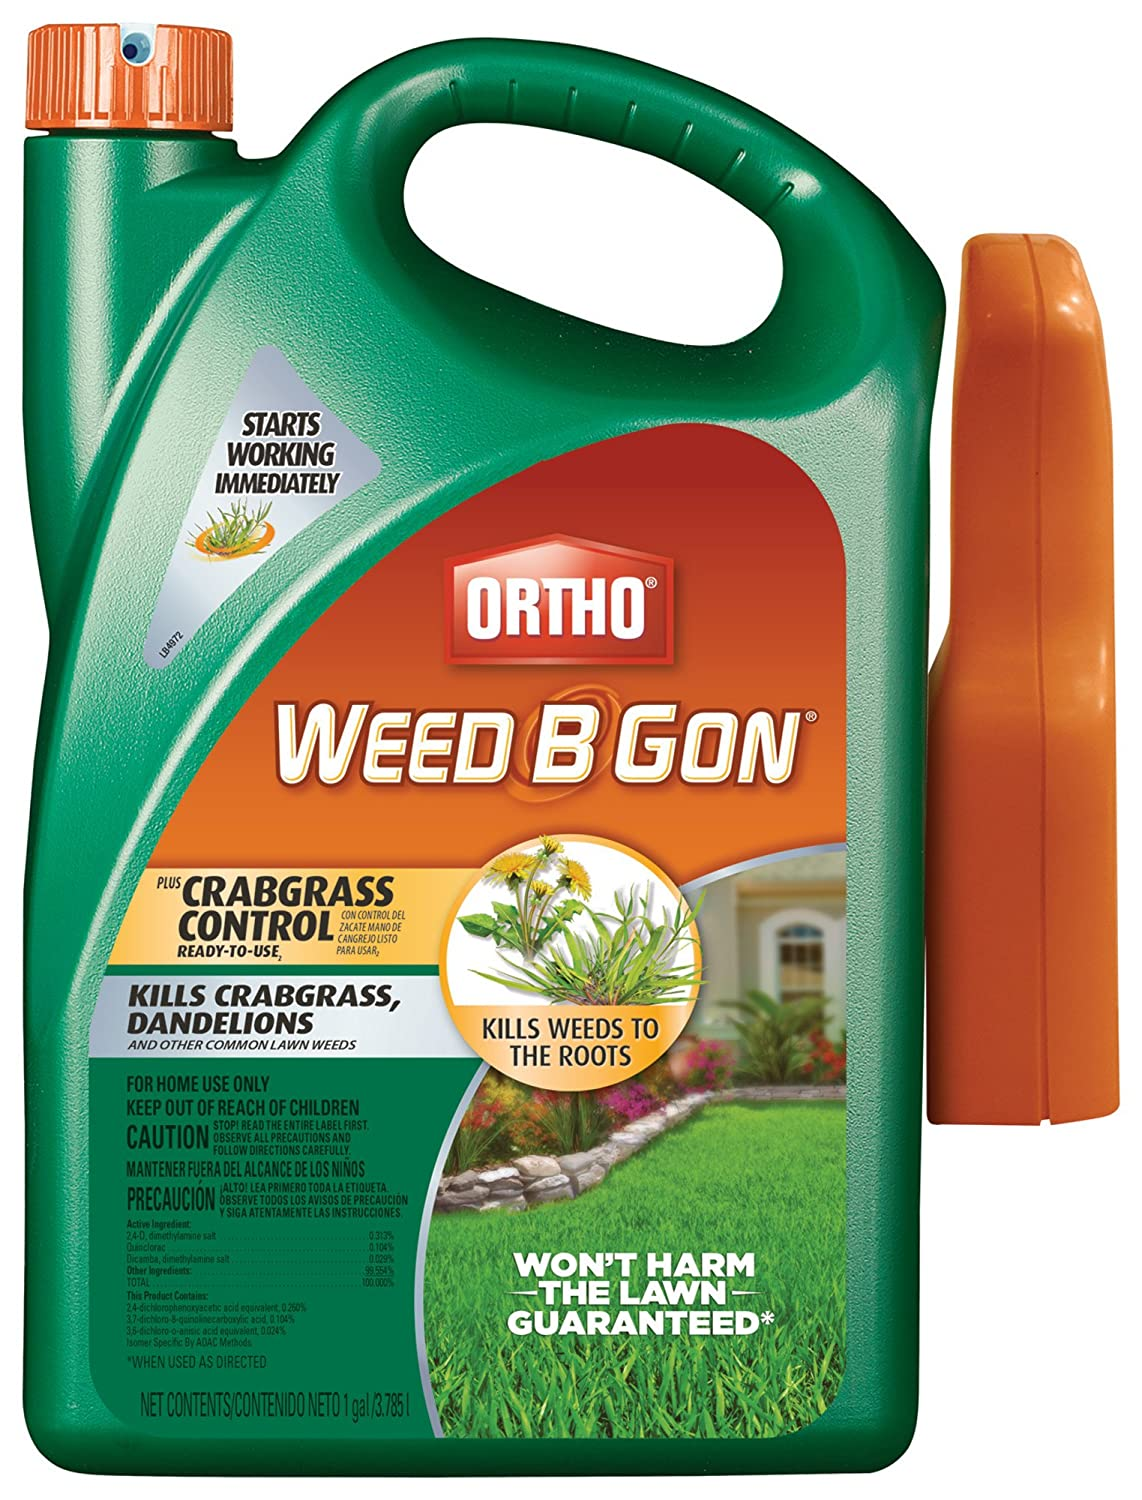 Ortho Weed B Gon Plus Crabgrass Control Ready-To-Use2 Trigger Sprayer